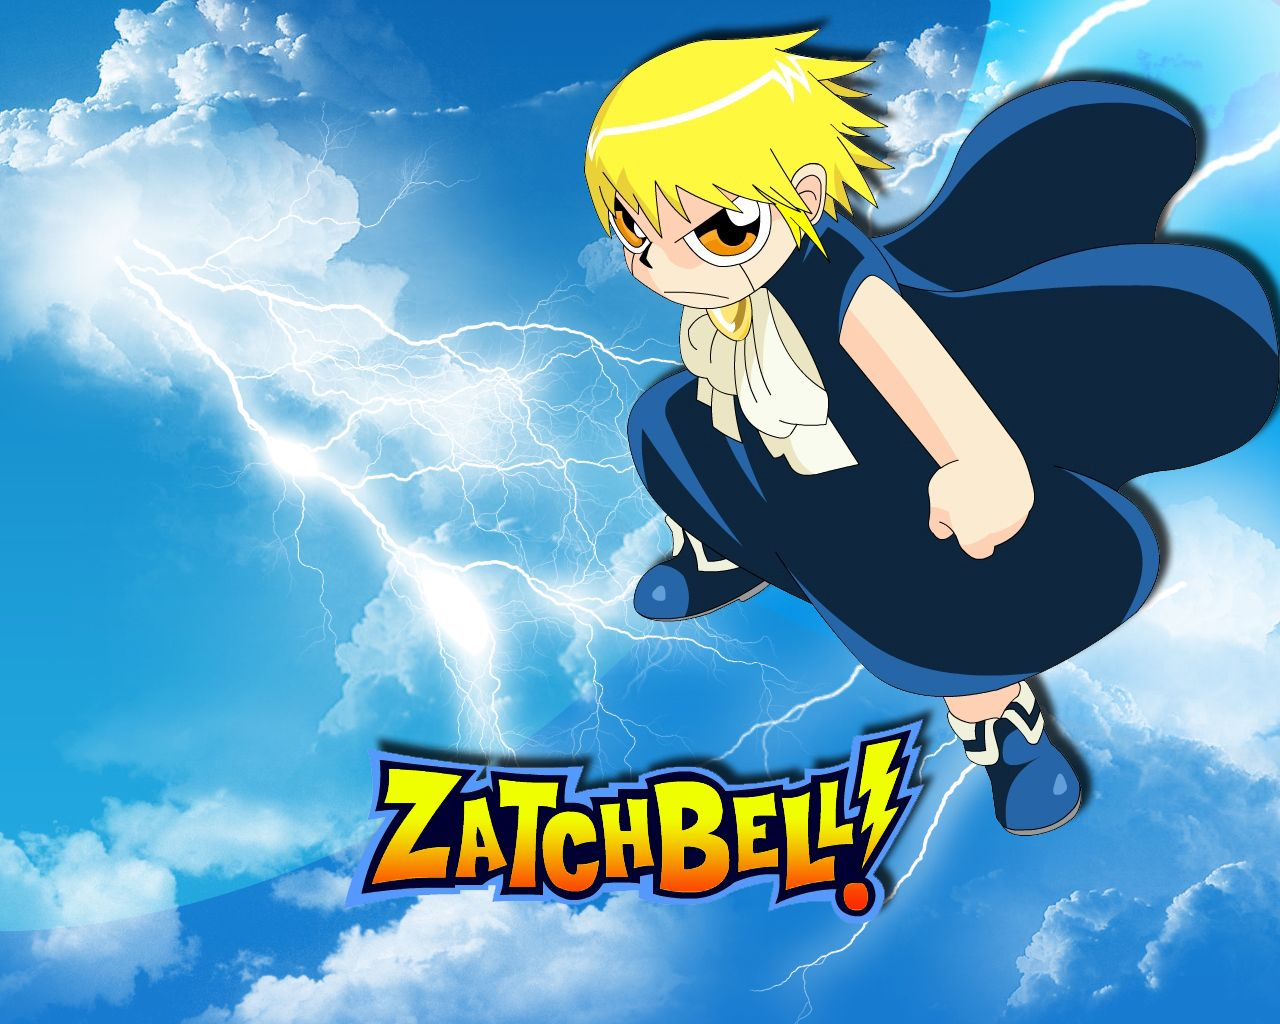 Zatch Bell Hd Wallpaper Download For Desktop Cartoon Wallpapers